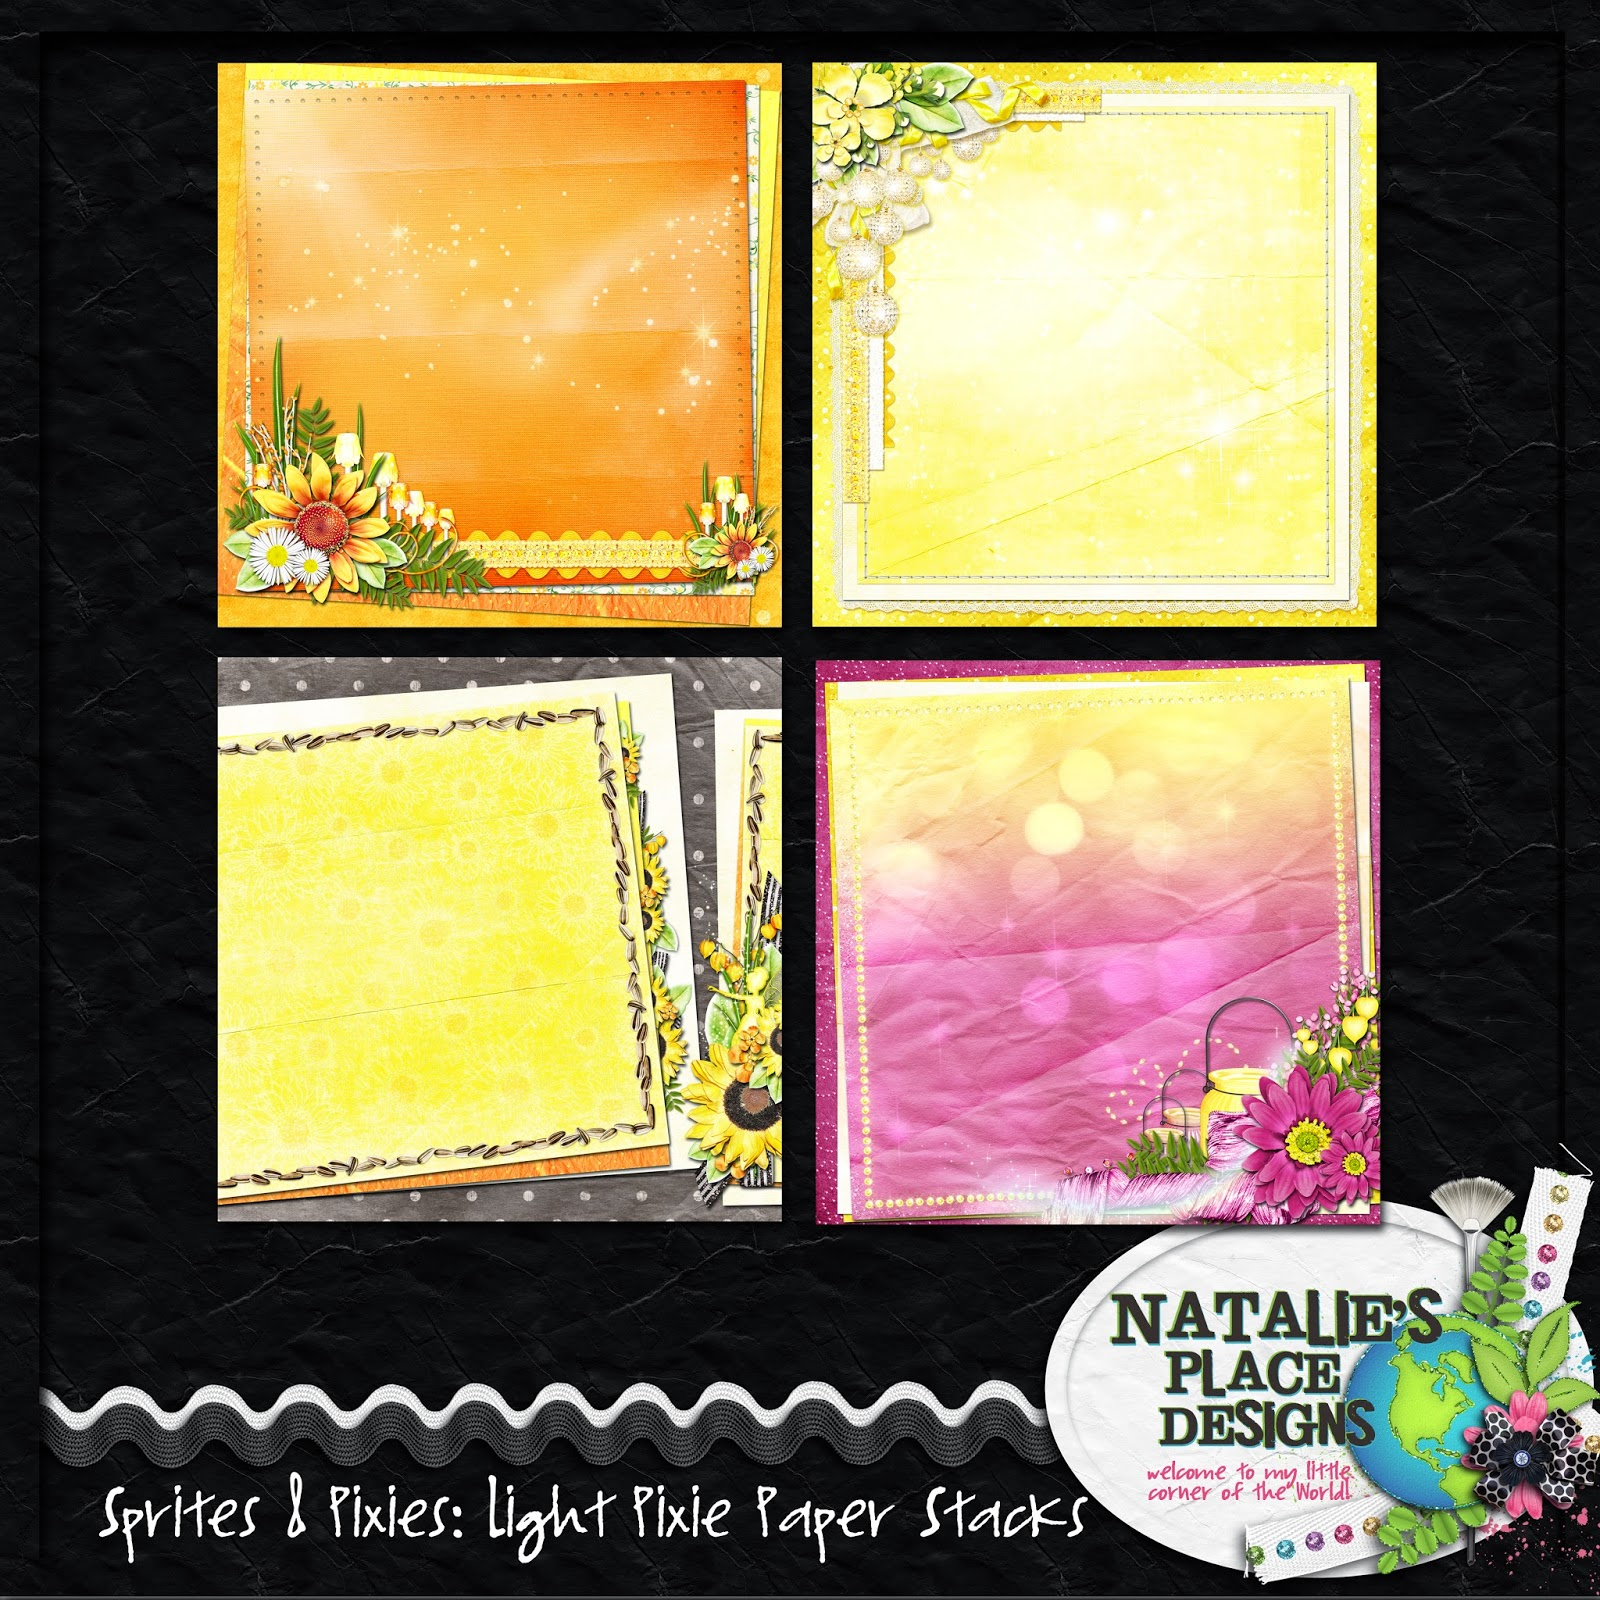 http://www.nataliesplacedesigns.com/store/p488/Sprites_%26_Pixies%3A_Light_Pixie_Paper_Stacks.html